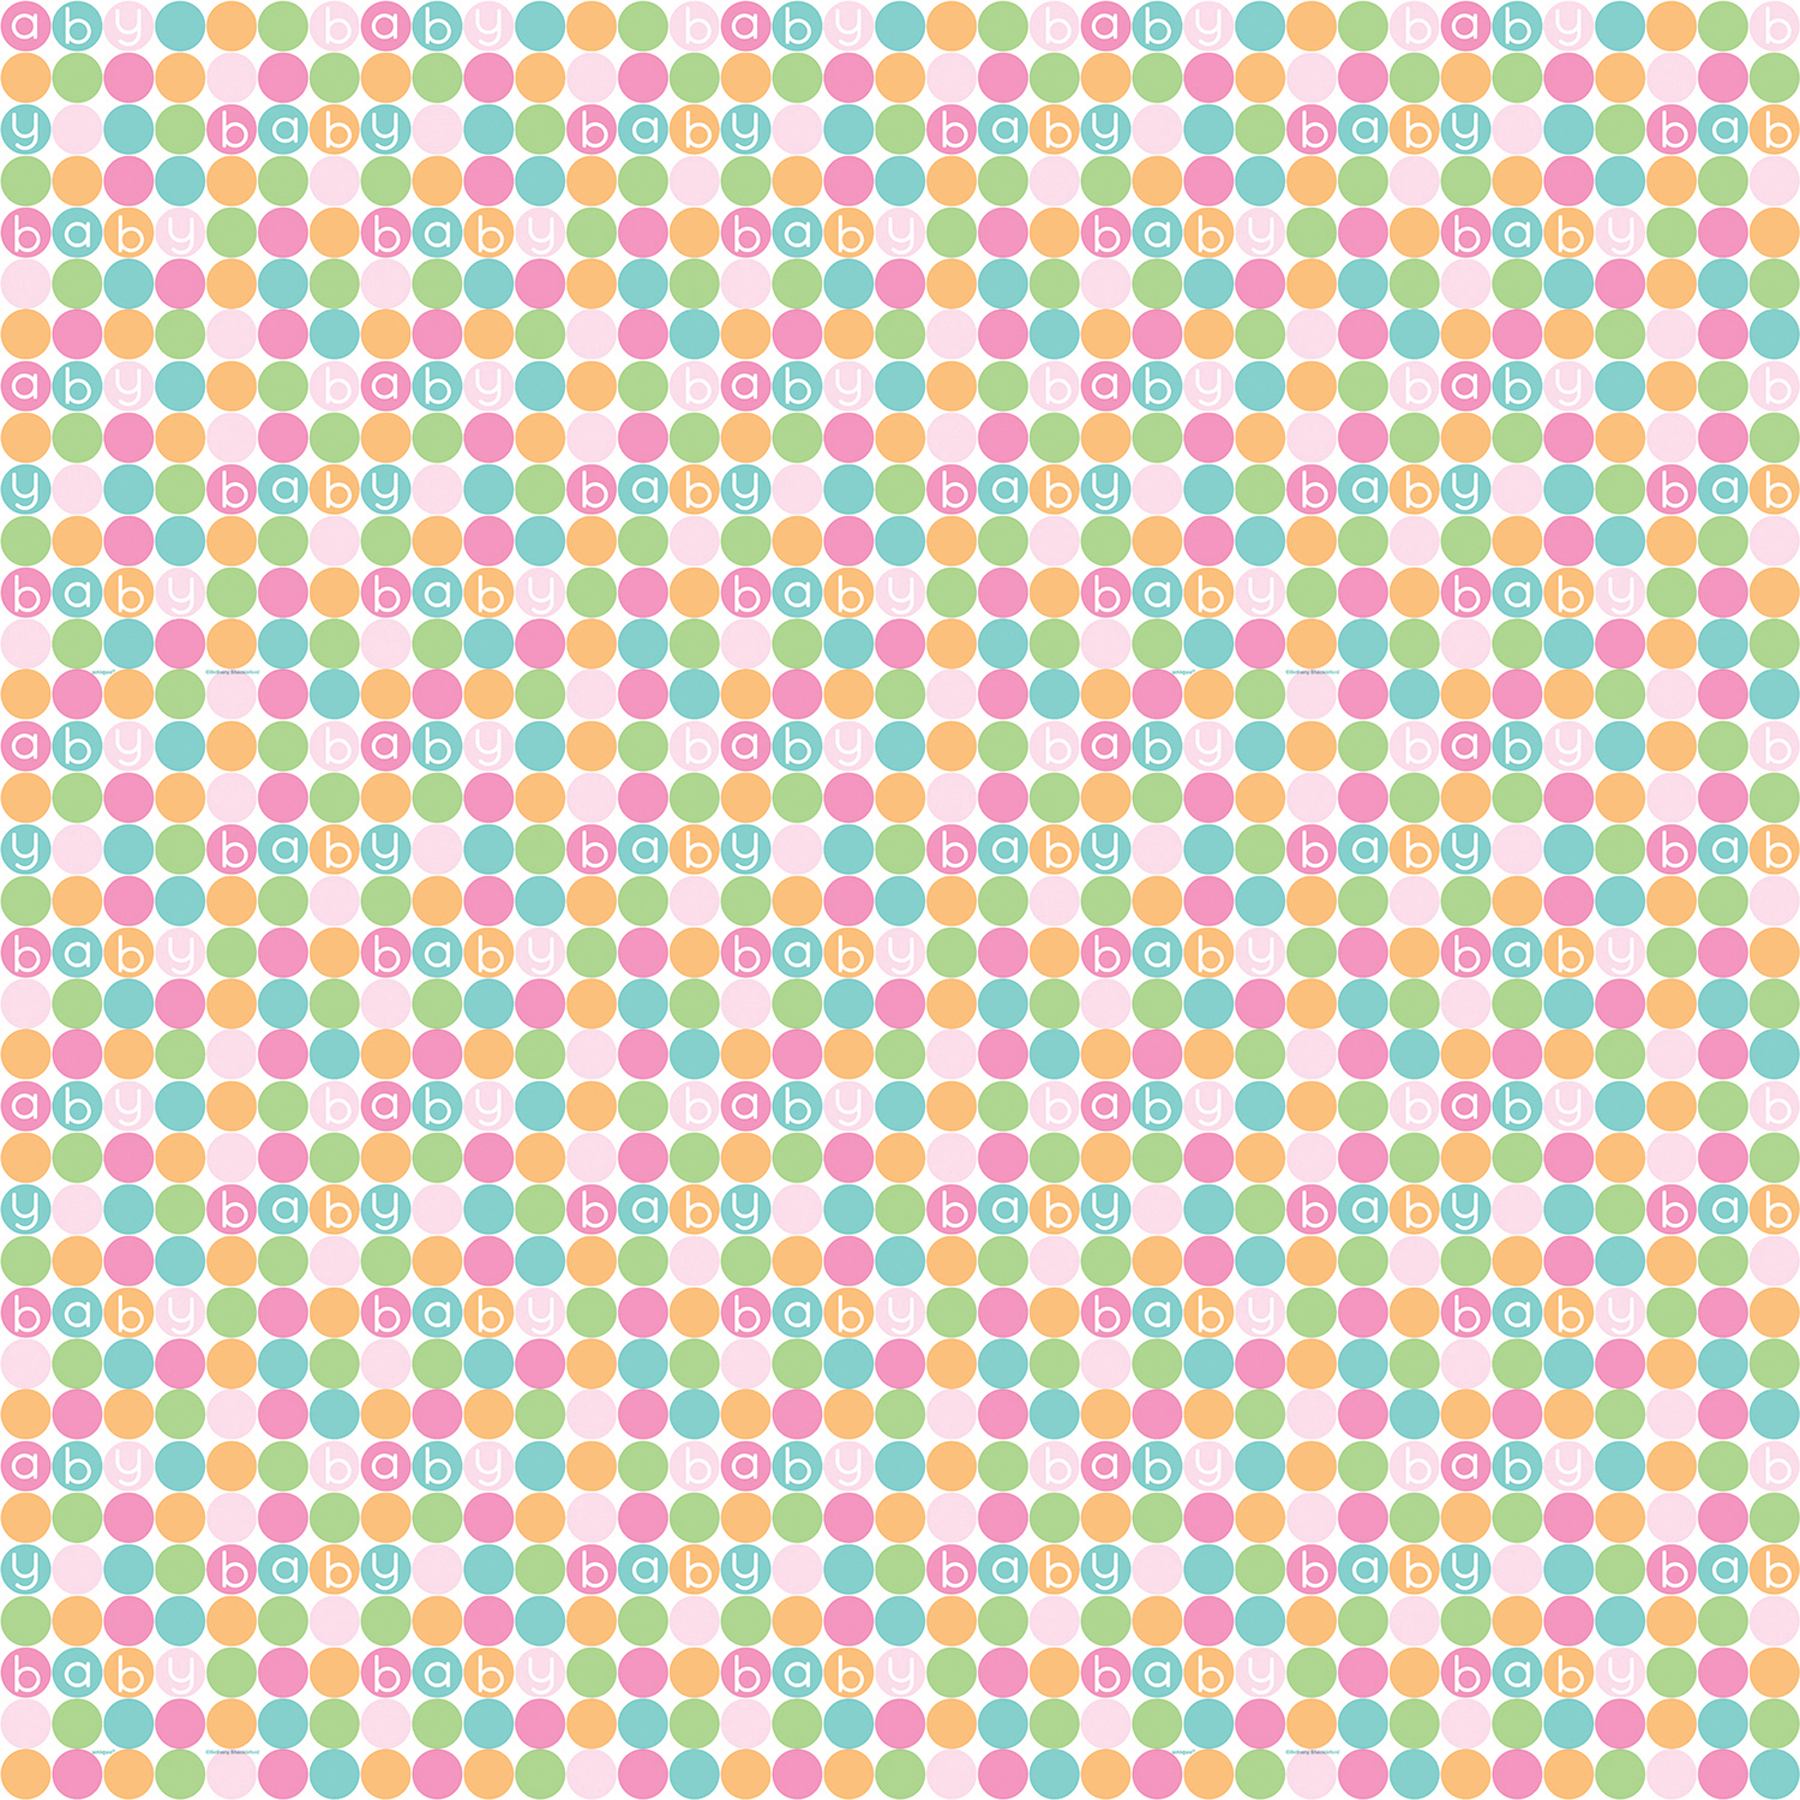 Pastel Baby Shower Wrapping Paper